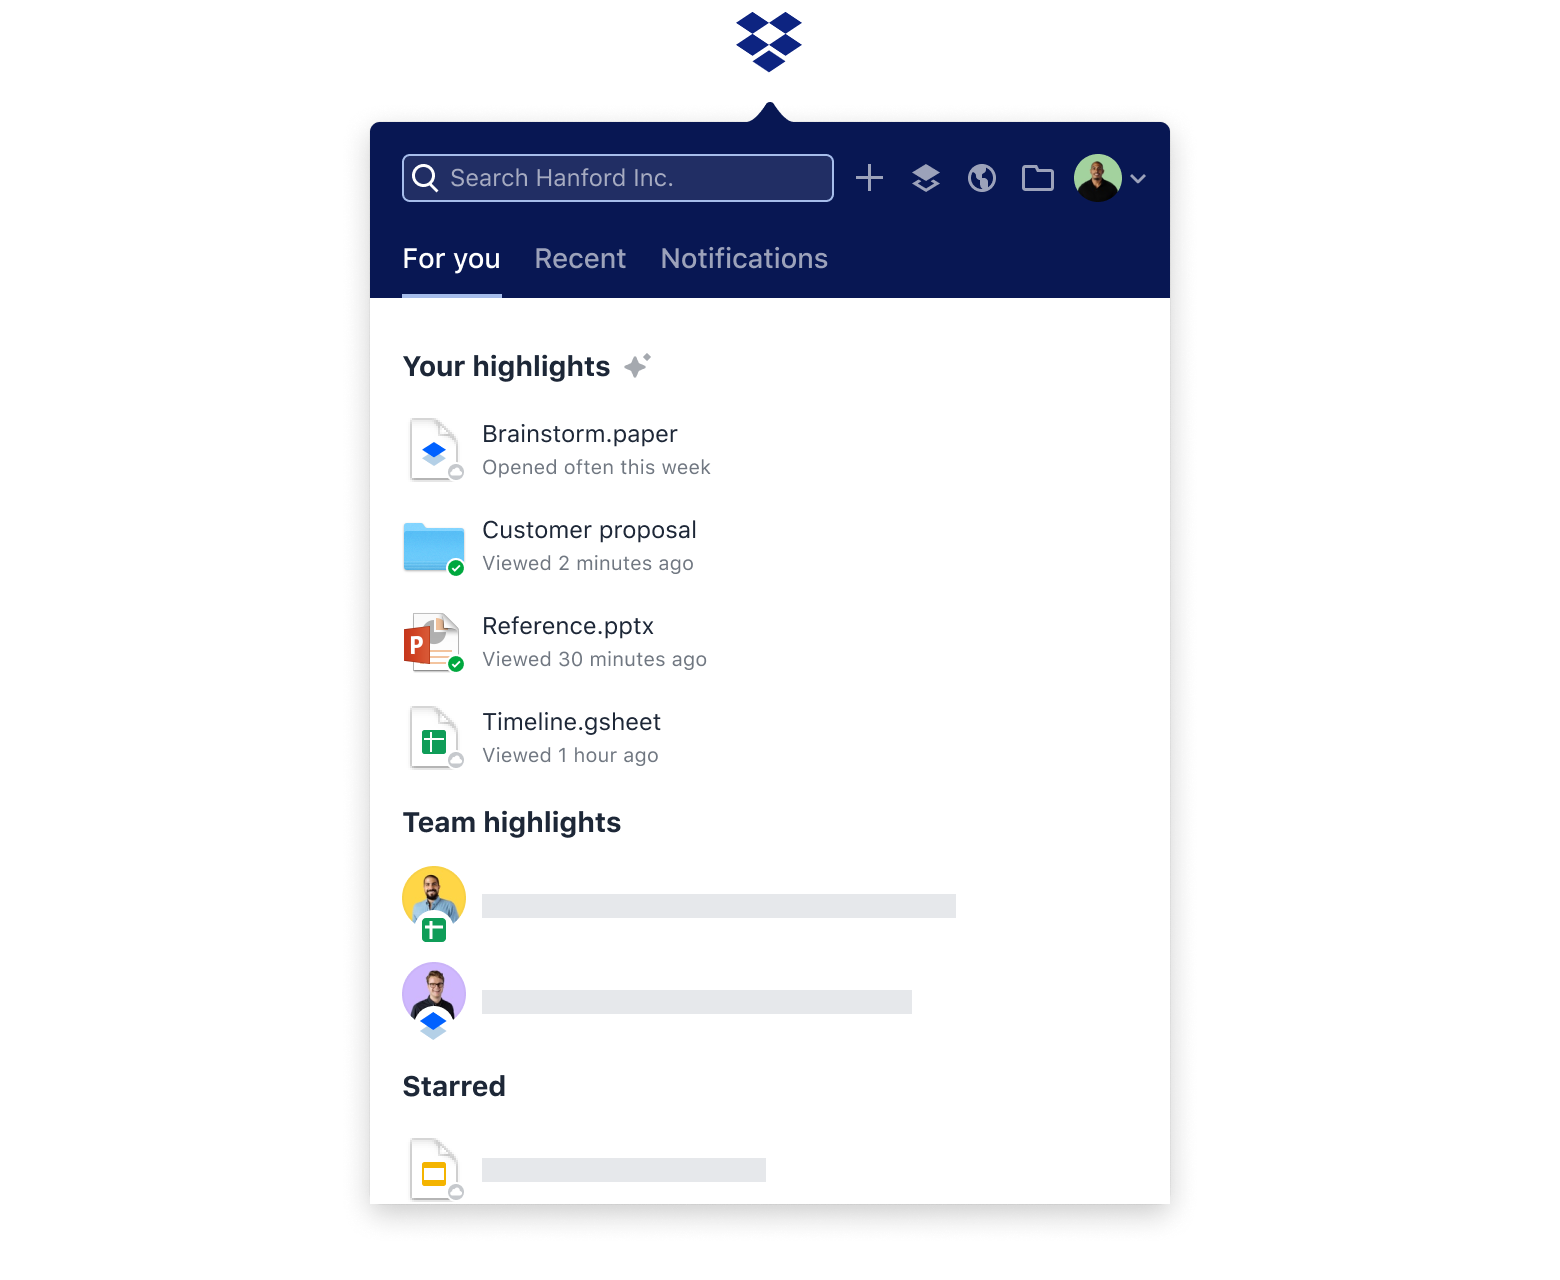 Overview of team and personal highlights of recent activity in the Dropbox 'For you' tab.